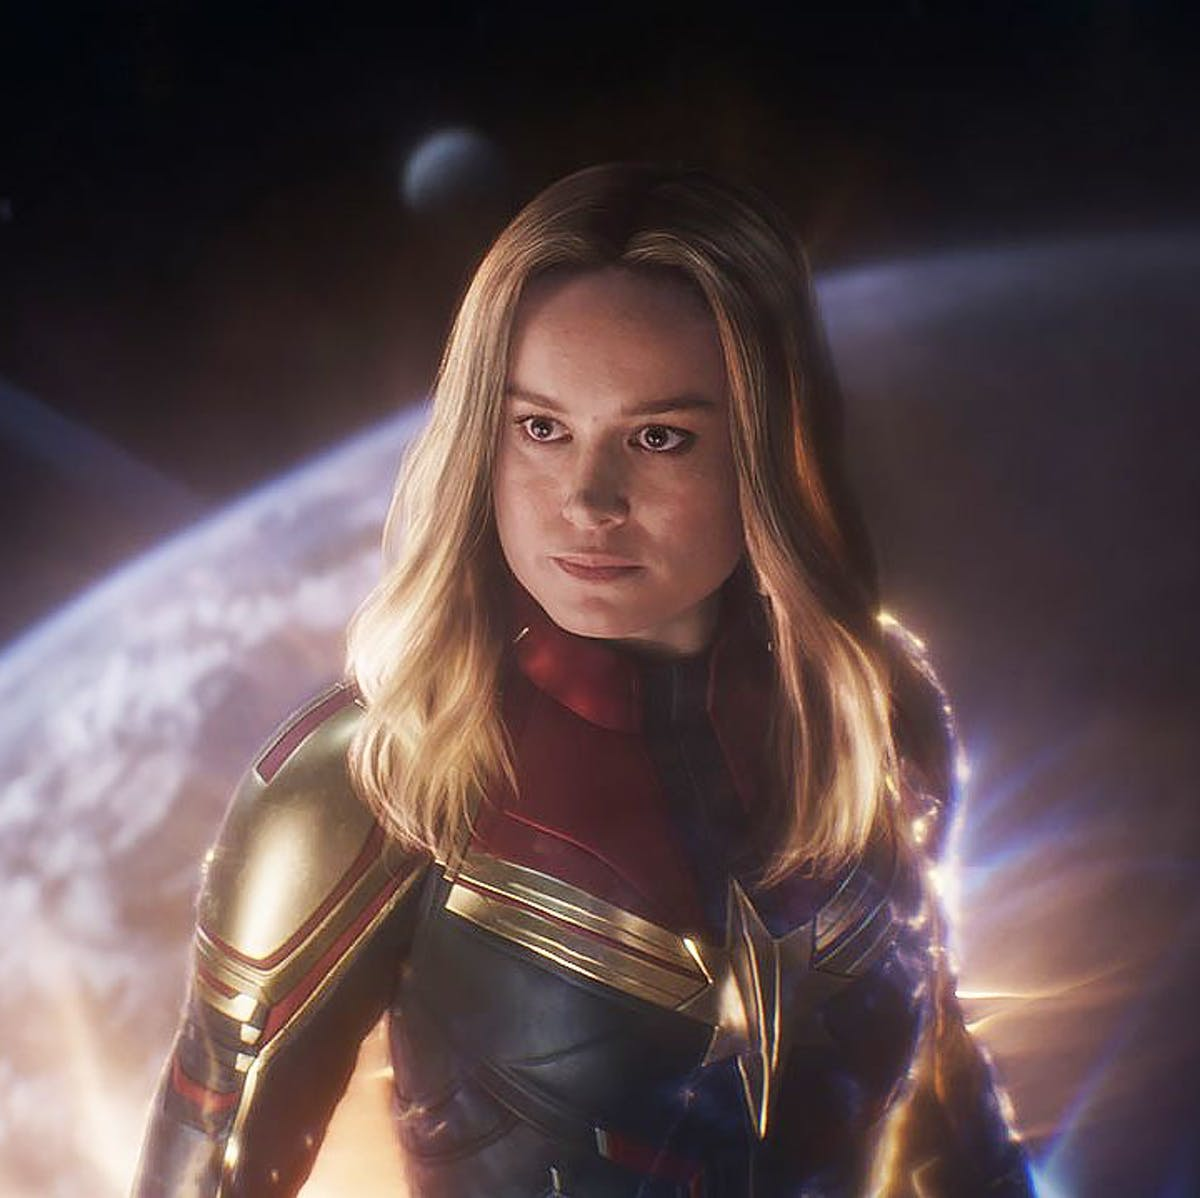 'Captain Marvel 2' rumor about Brie Larson is offensive baloney